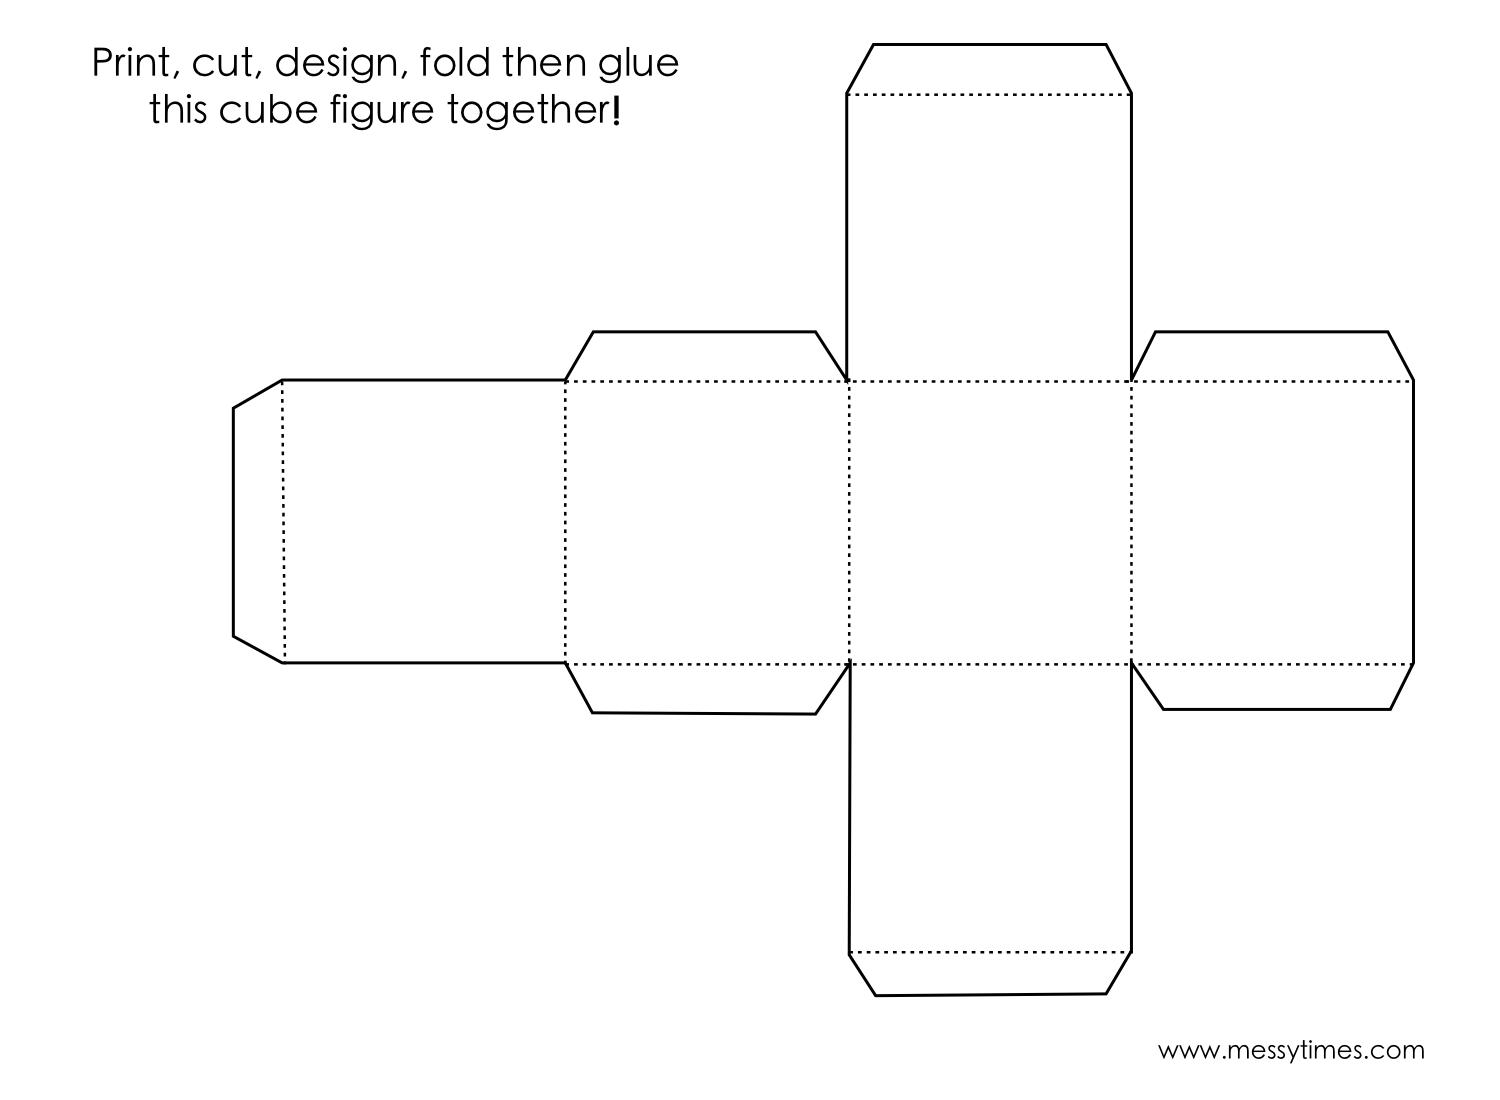 A 3d Cube Object To Cut Design Fold And Glue Together